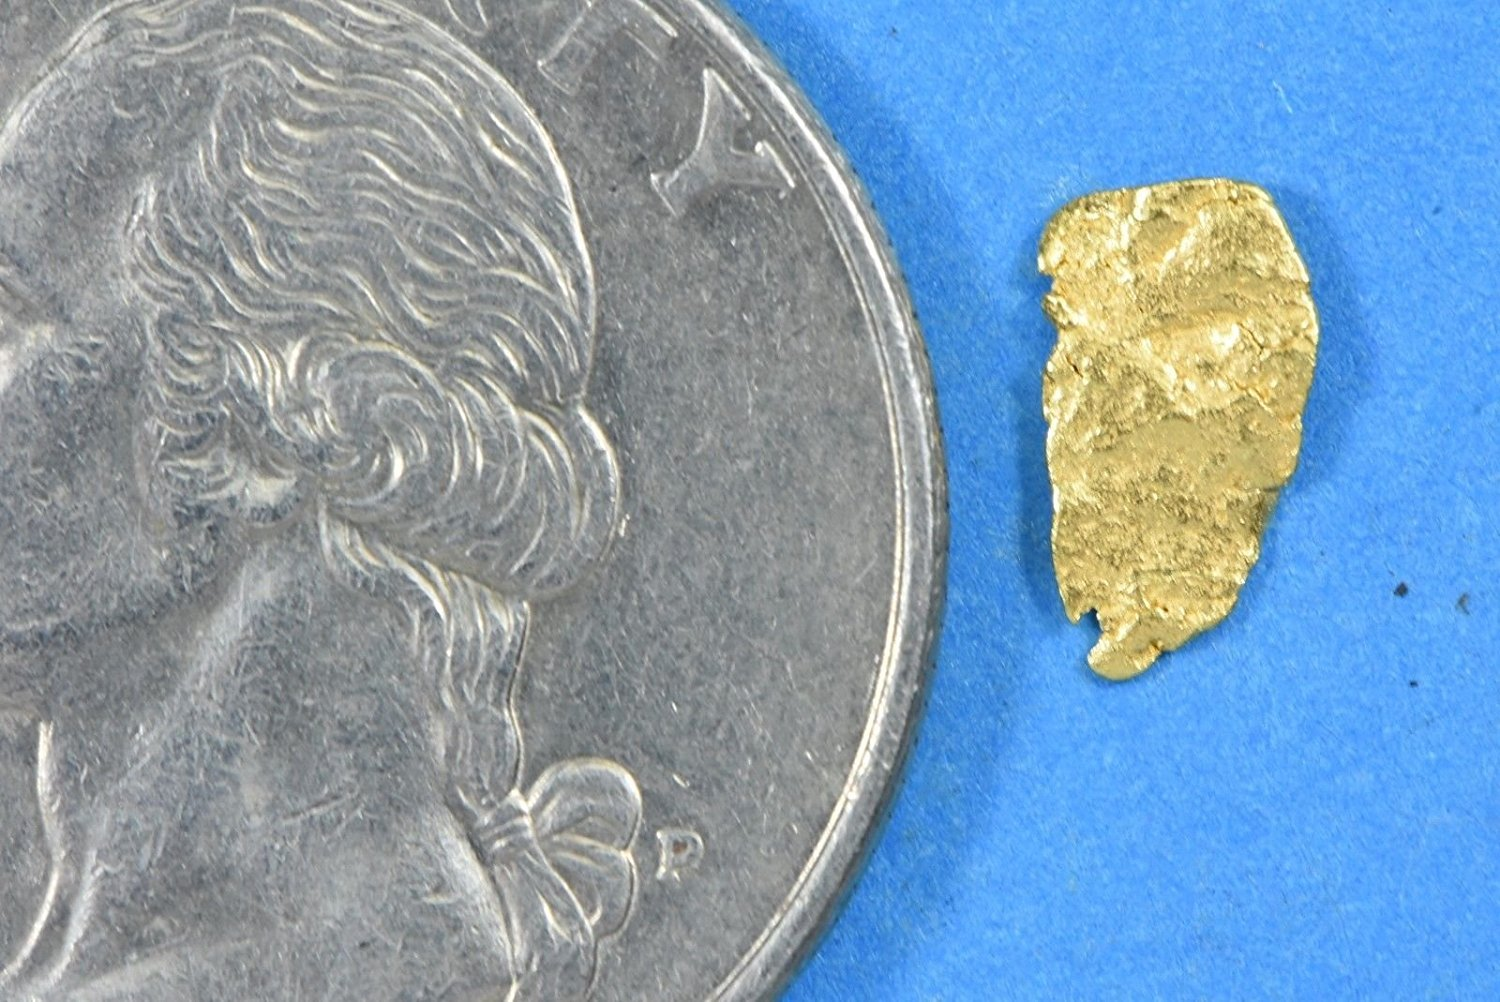 Alaskan-Yukon Bc Gold Rush Natural Nugget 0.16 Grams Genuine Alaska .10-.34